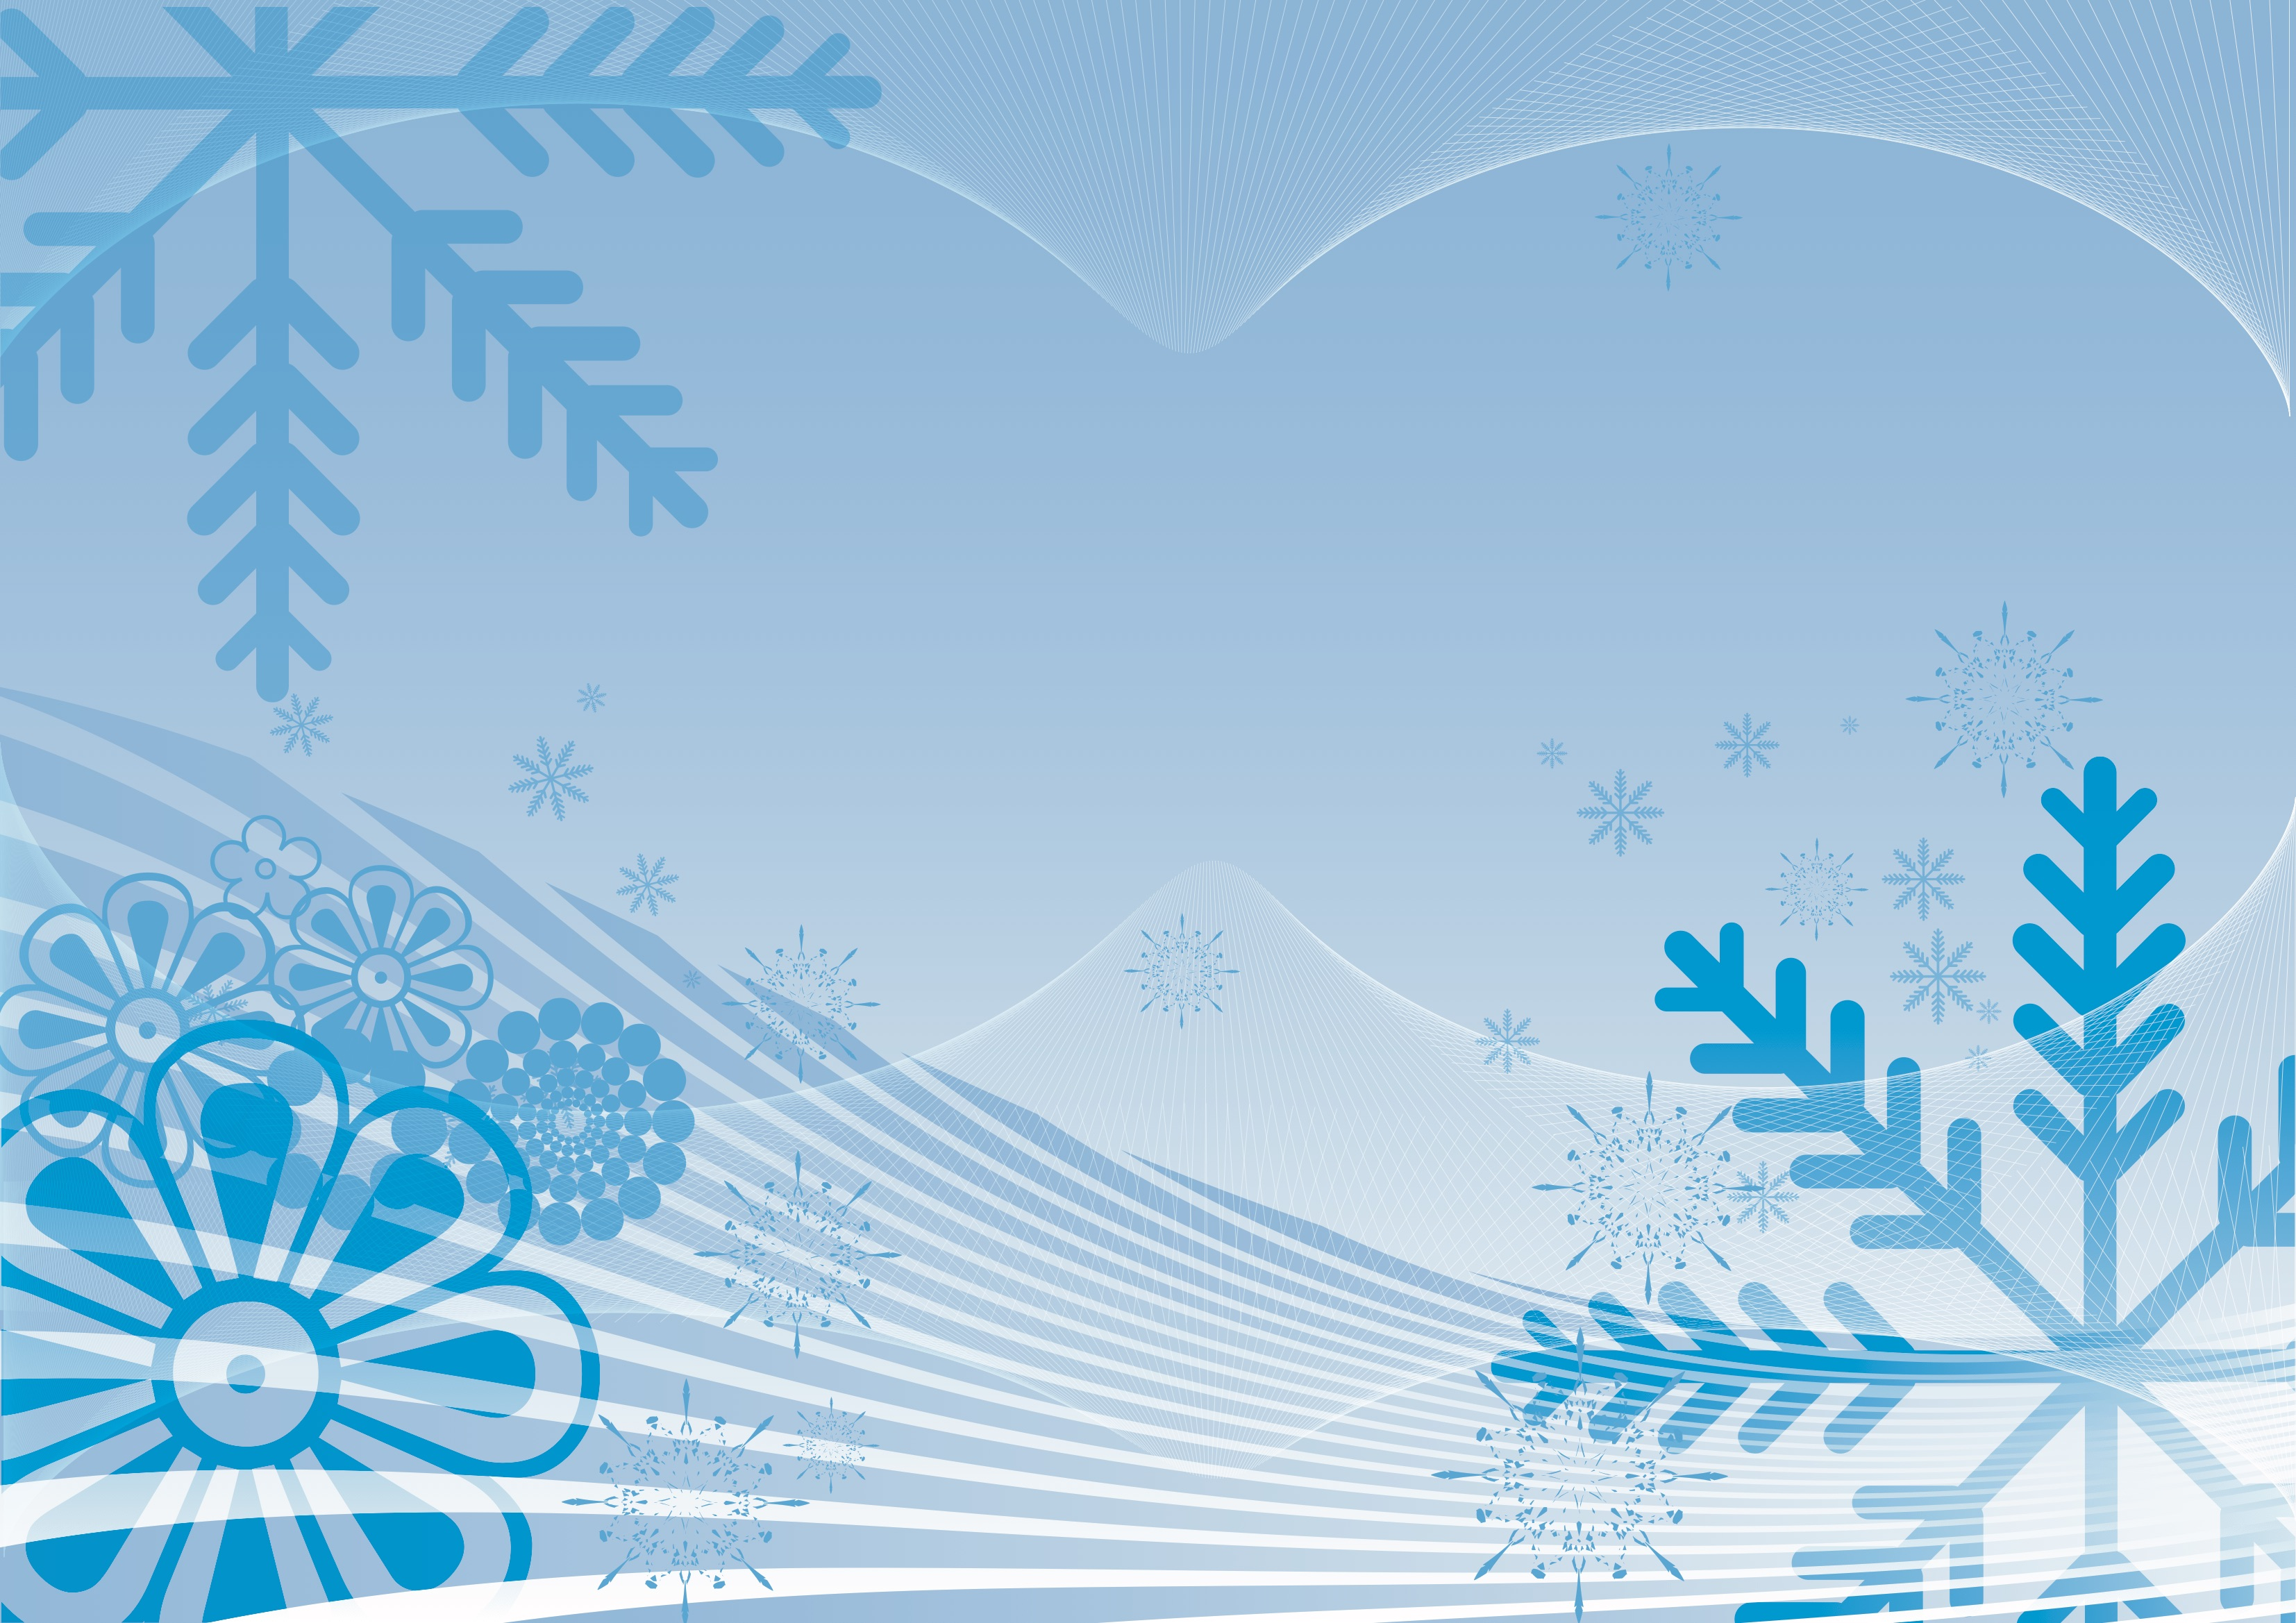 Winter-Snow-Vector.jpg